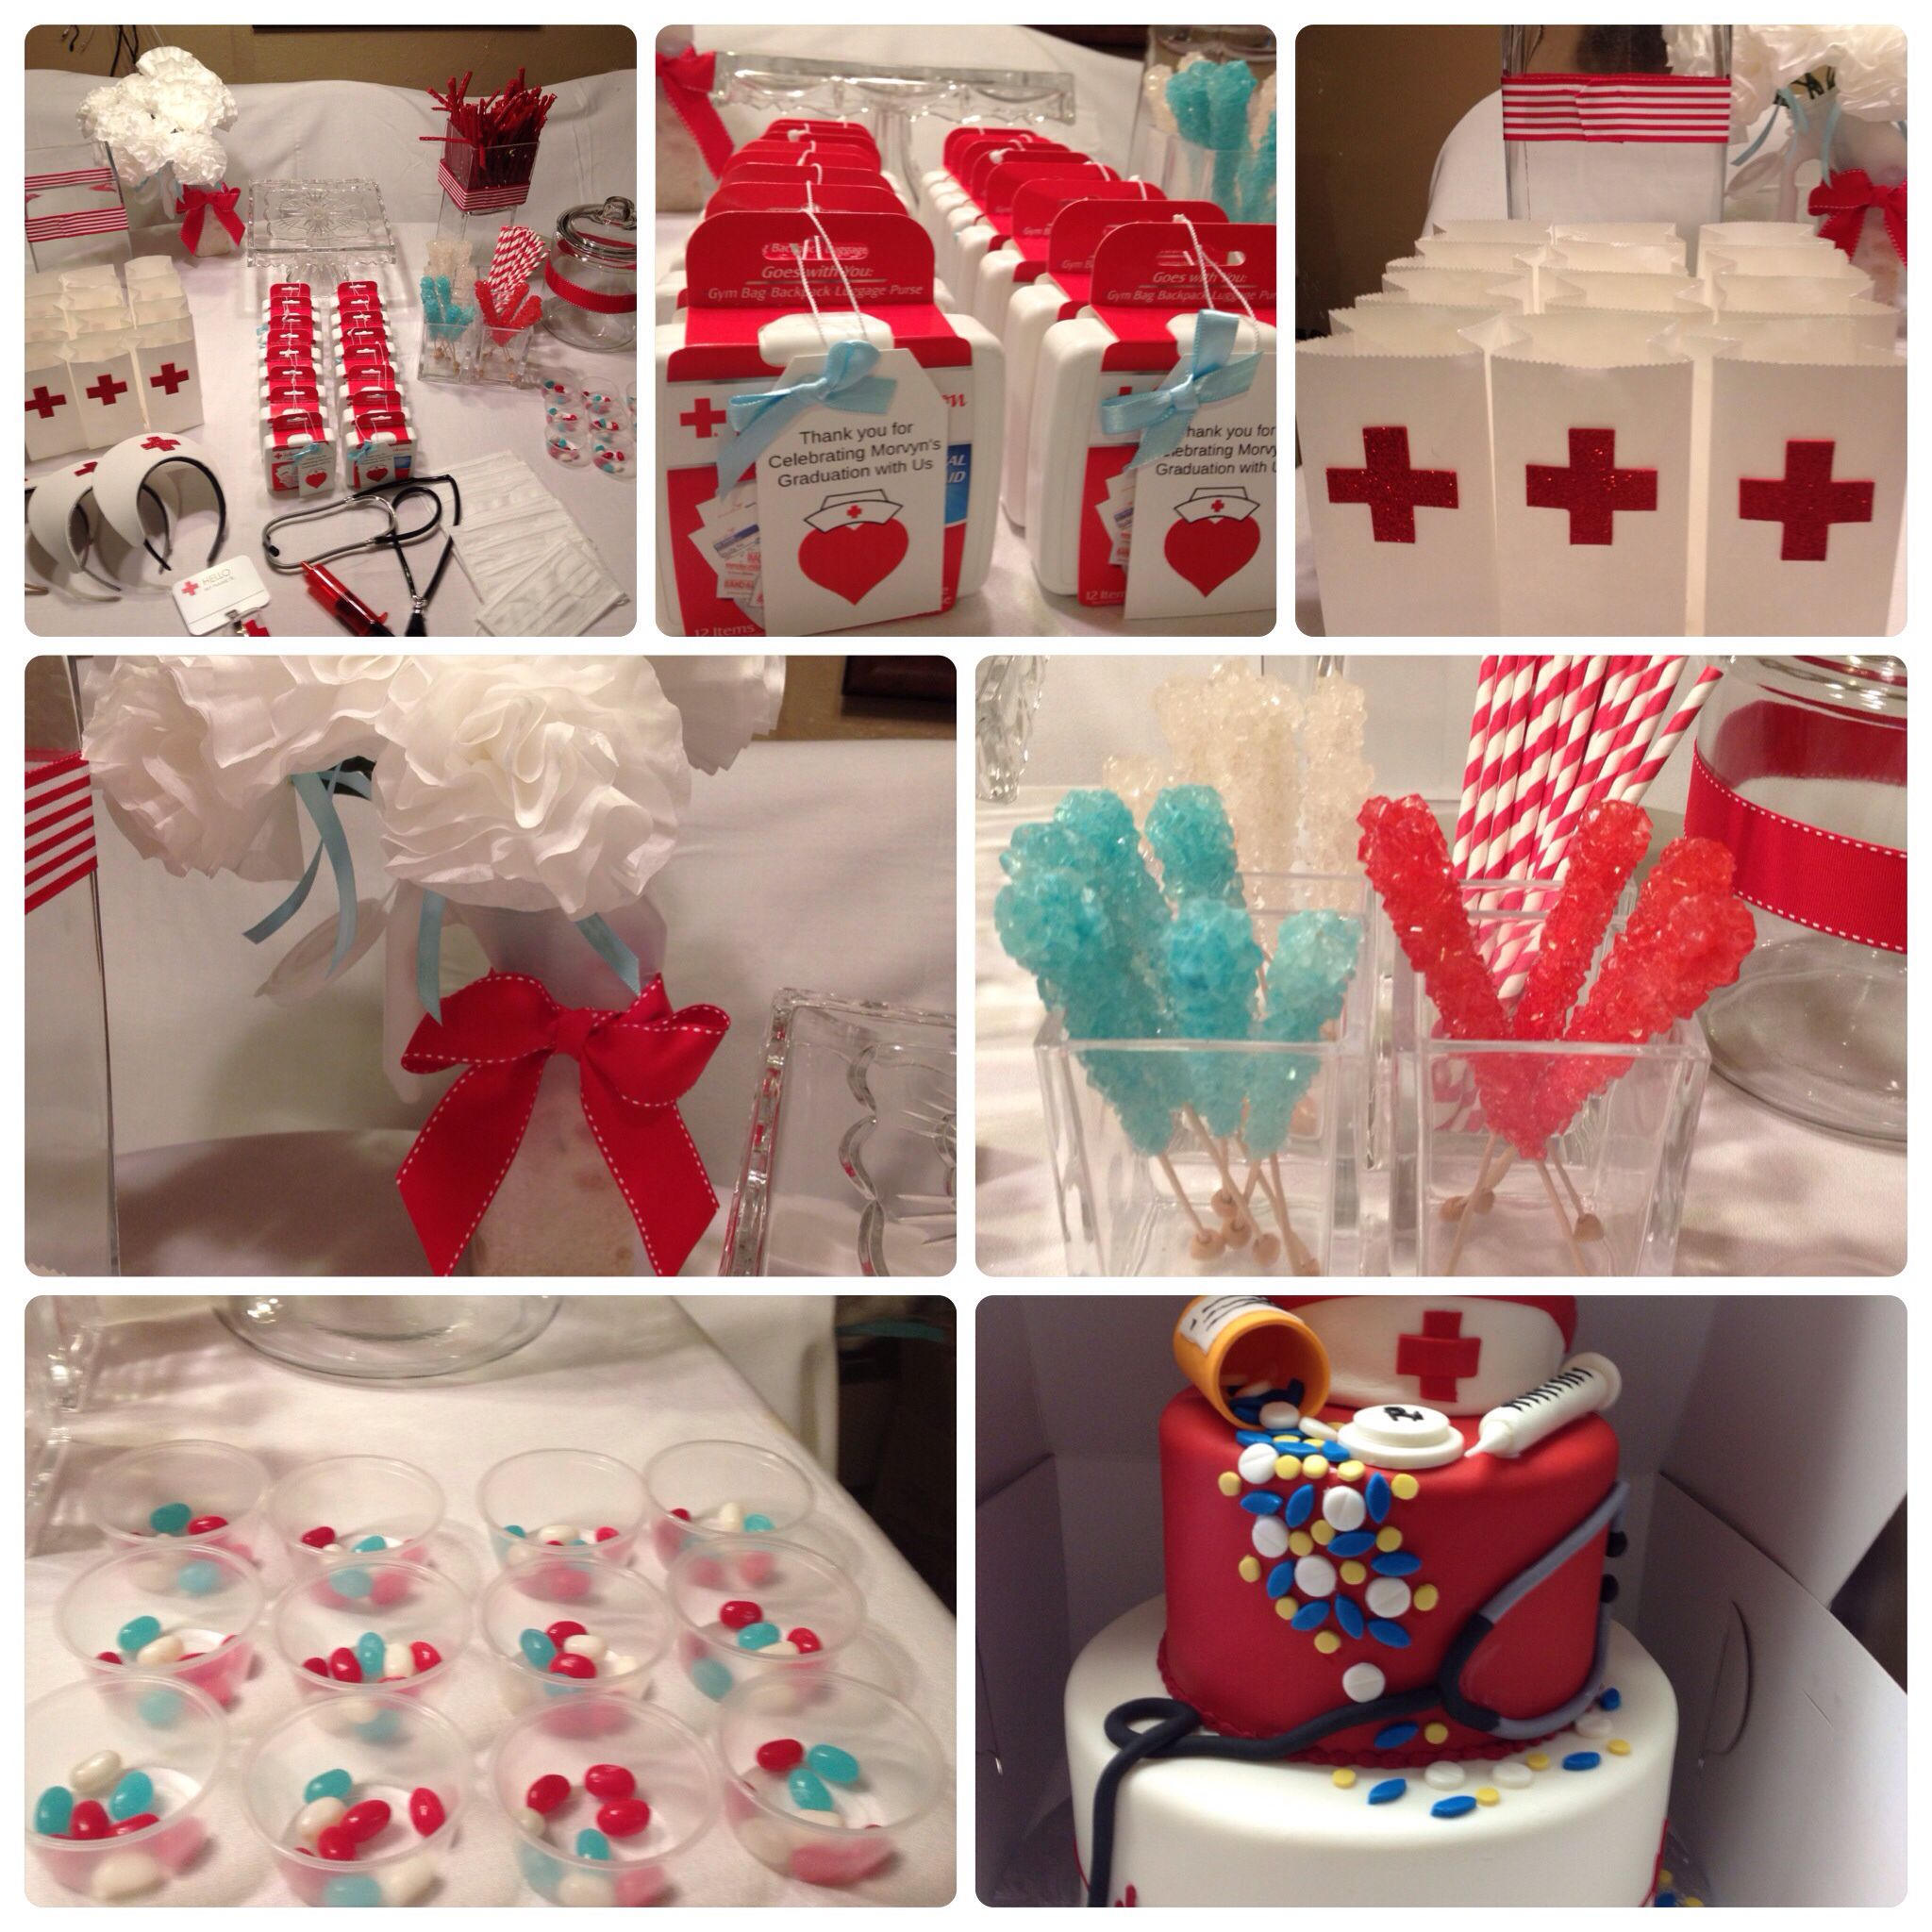 Pin By Victoria D Esposito On Party S At My House Nursing School Graduation Party Nursing Graduation Party Doctor Party